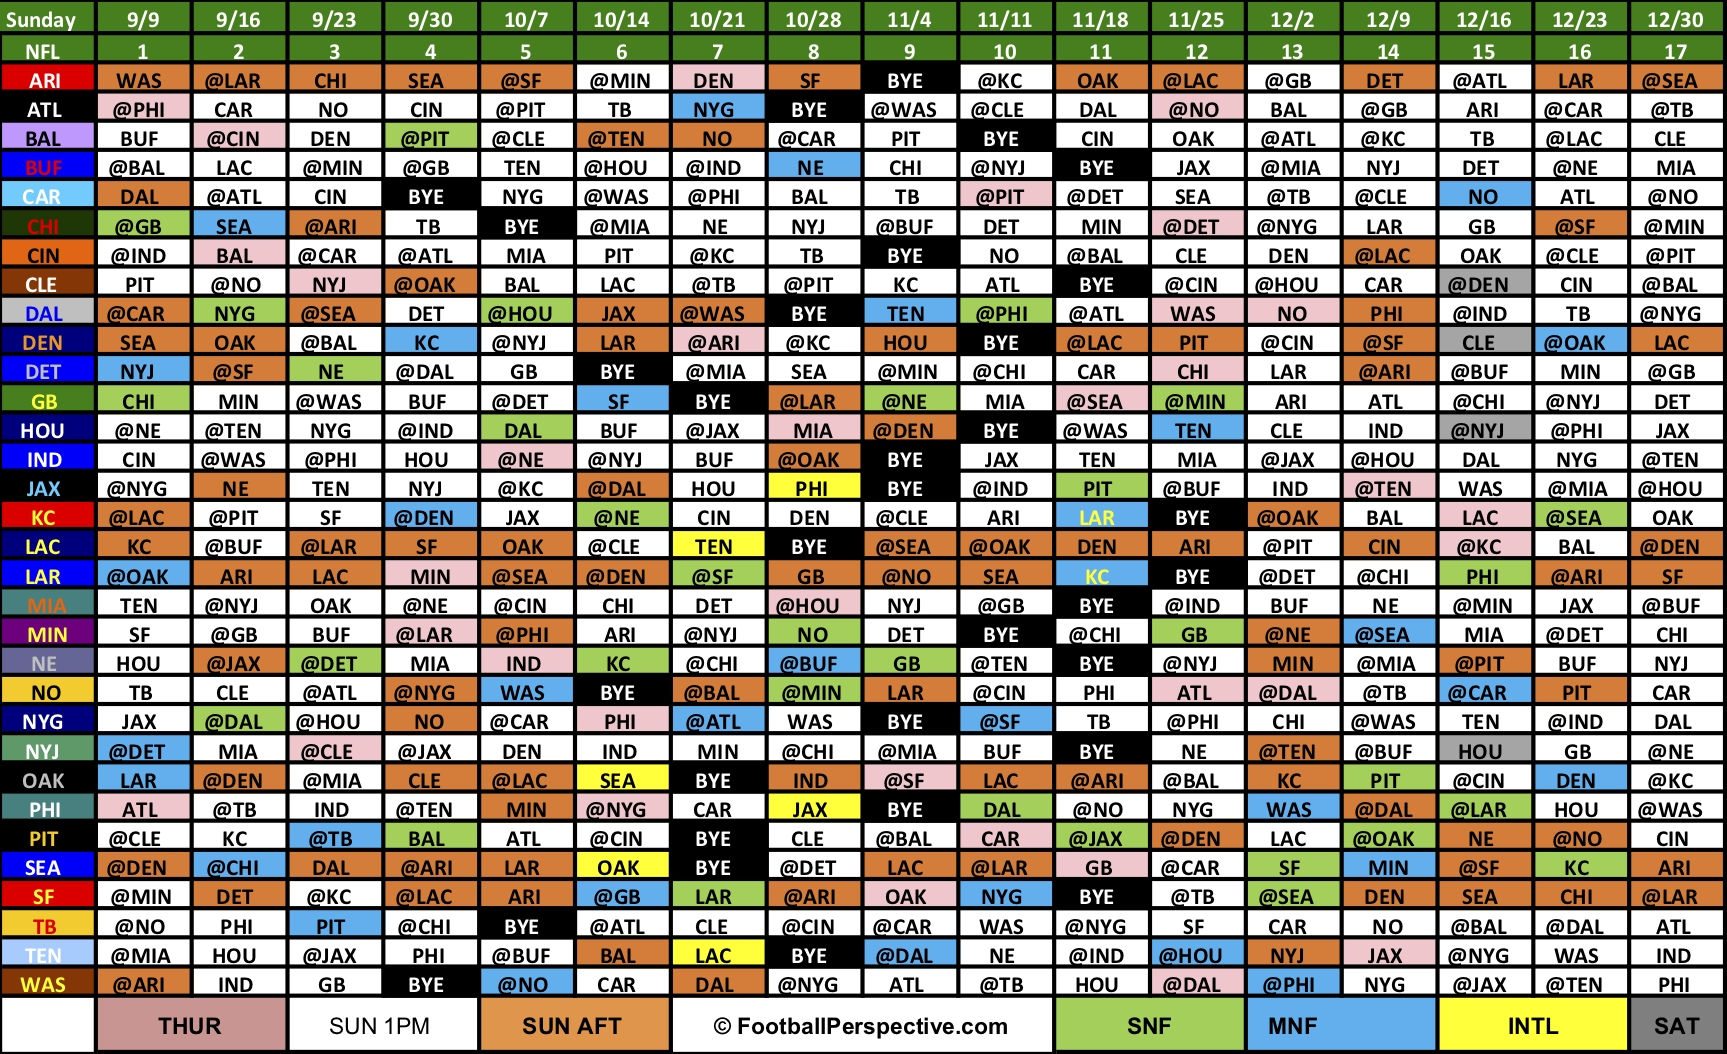 Nfl Schedule regarding Nfl Schedule 2019 2020 Excel